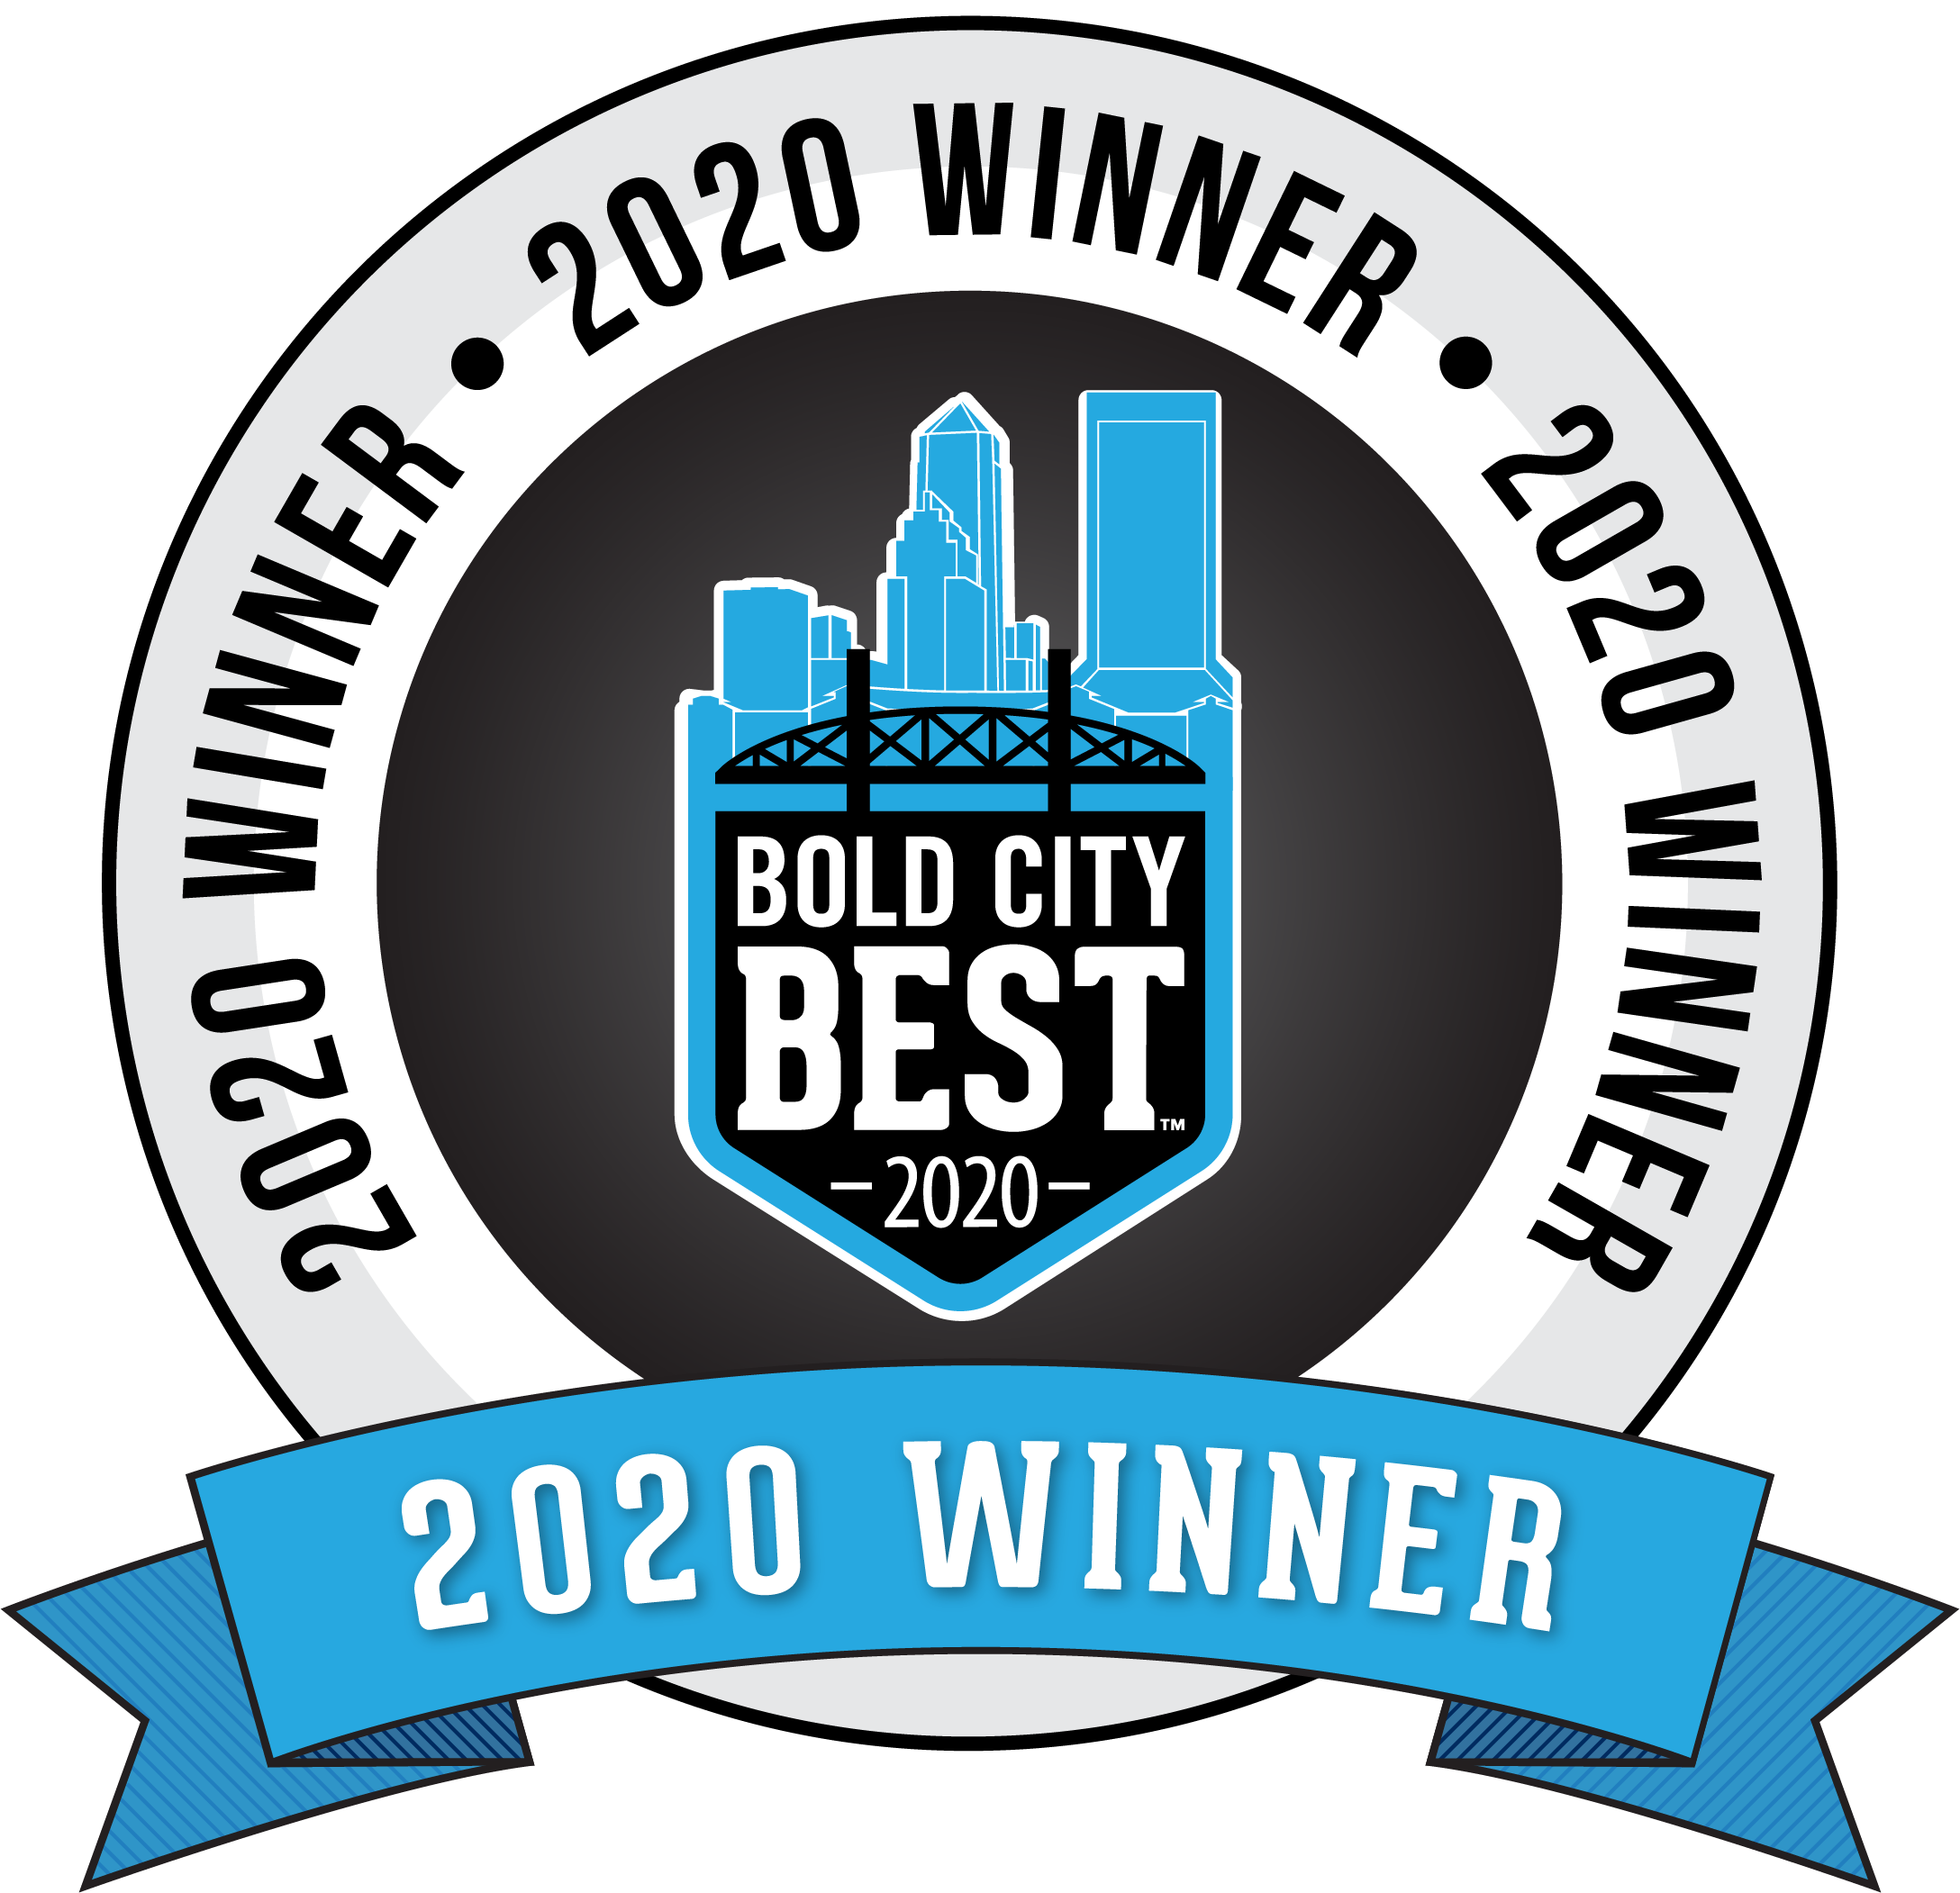 Bold City Best 2020